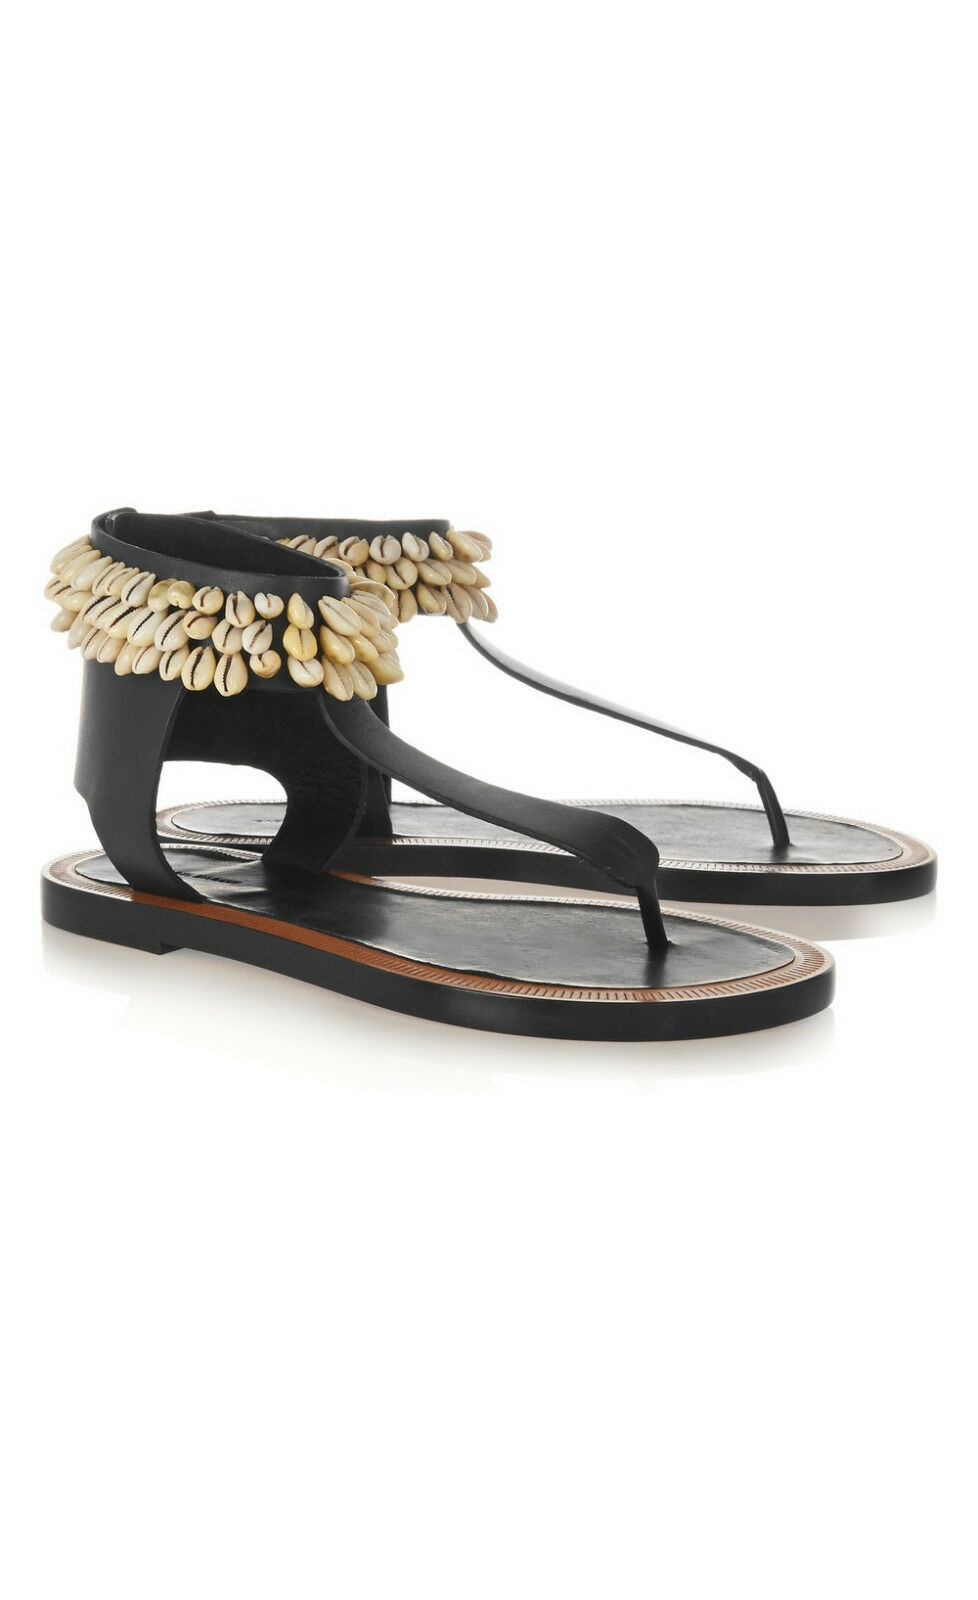 1165 NEW Isabel Marant Jean Shell-Embellished Leather Sandals Black sz 36   5.5